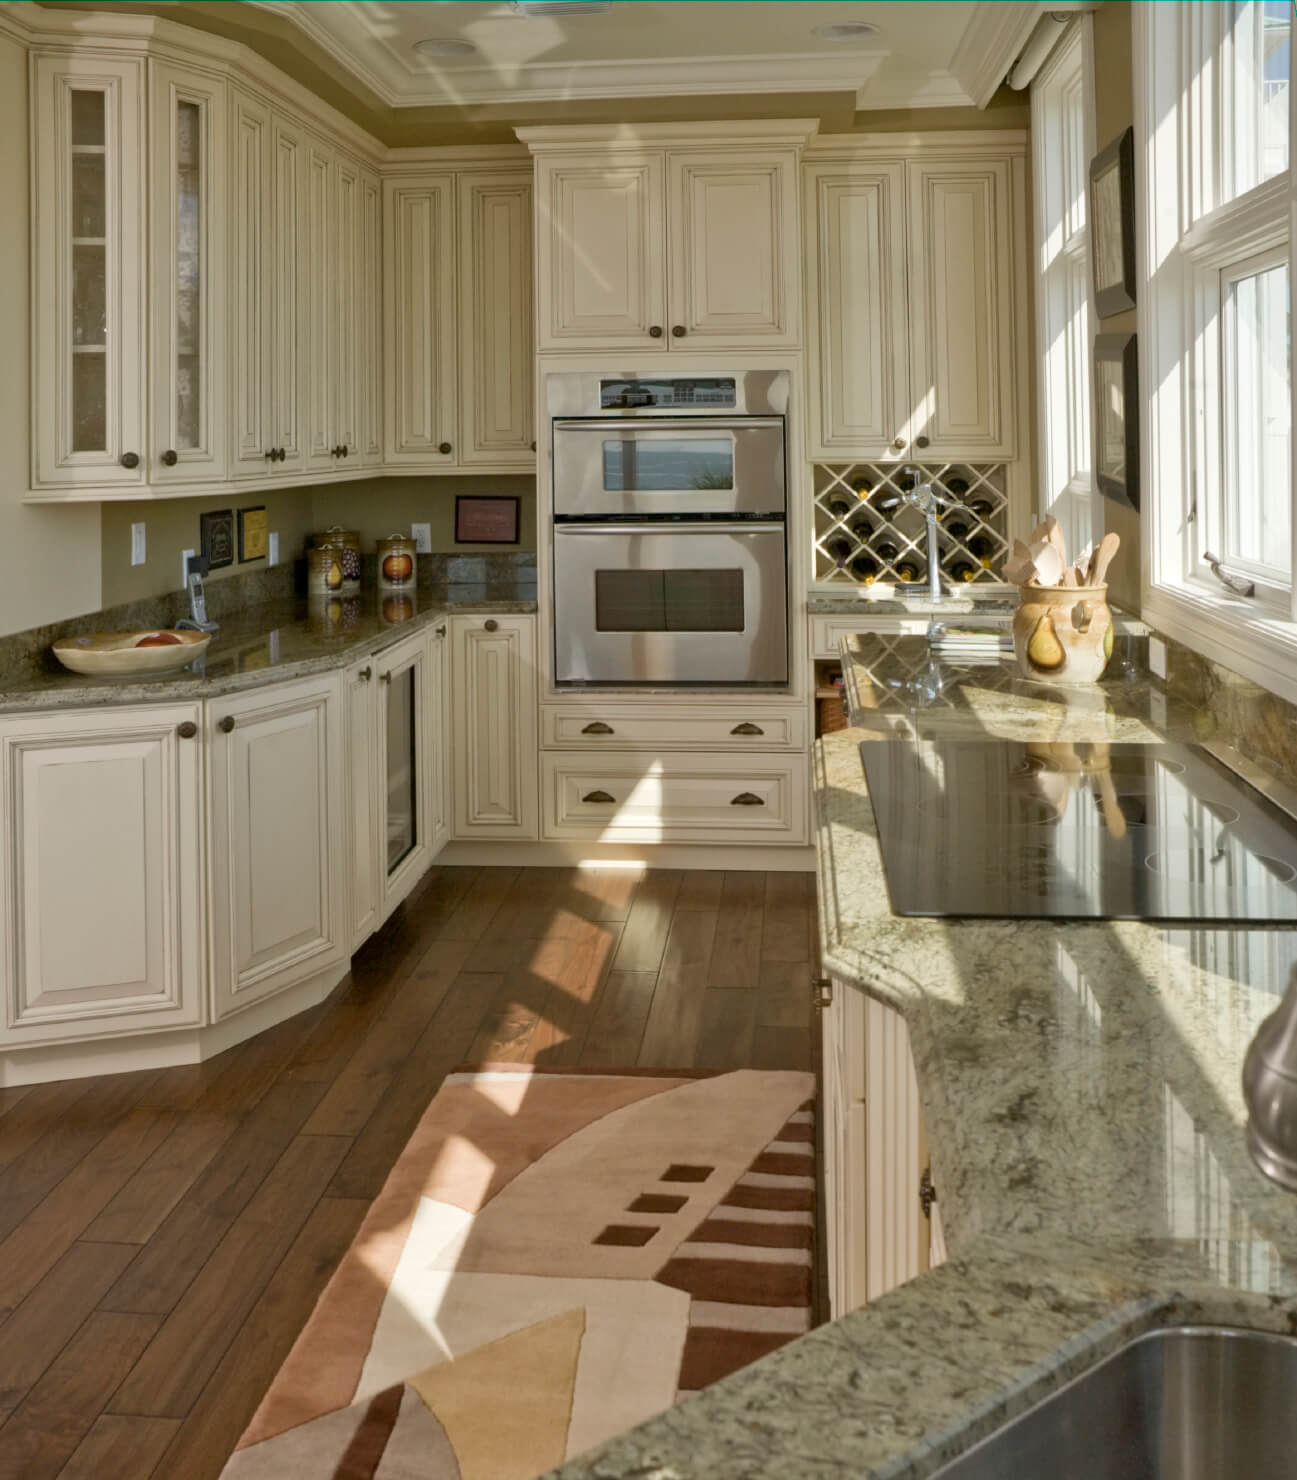 White Kitchen Cabinets And Countertops: 41 White Kitchen Interior Design & Decor Ideas (PICTURES